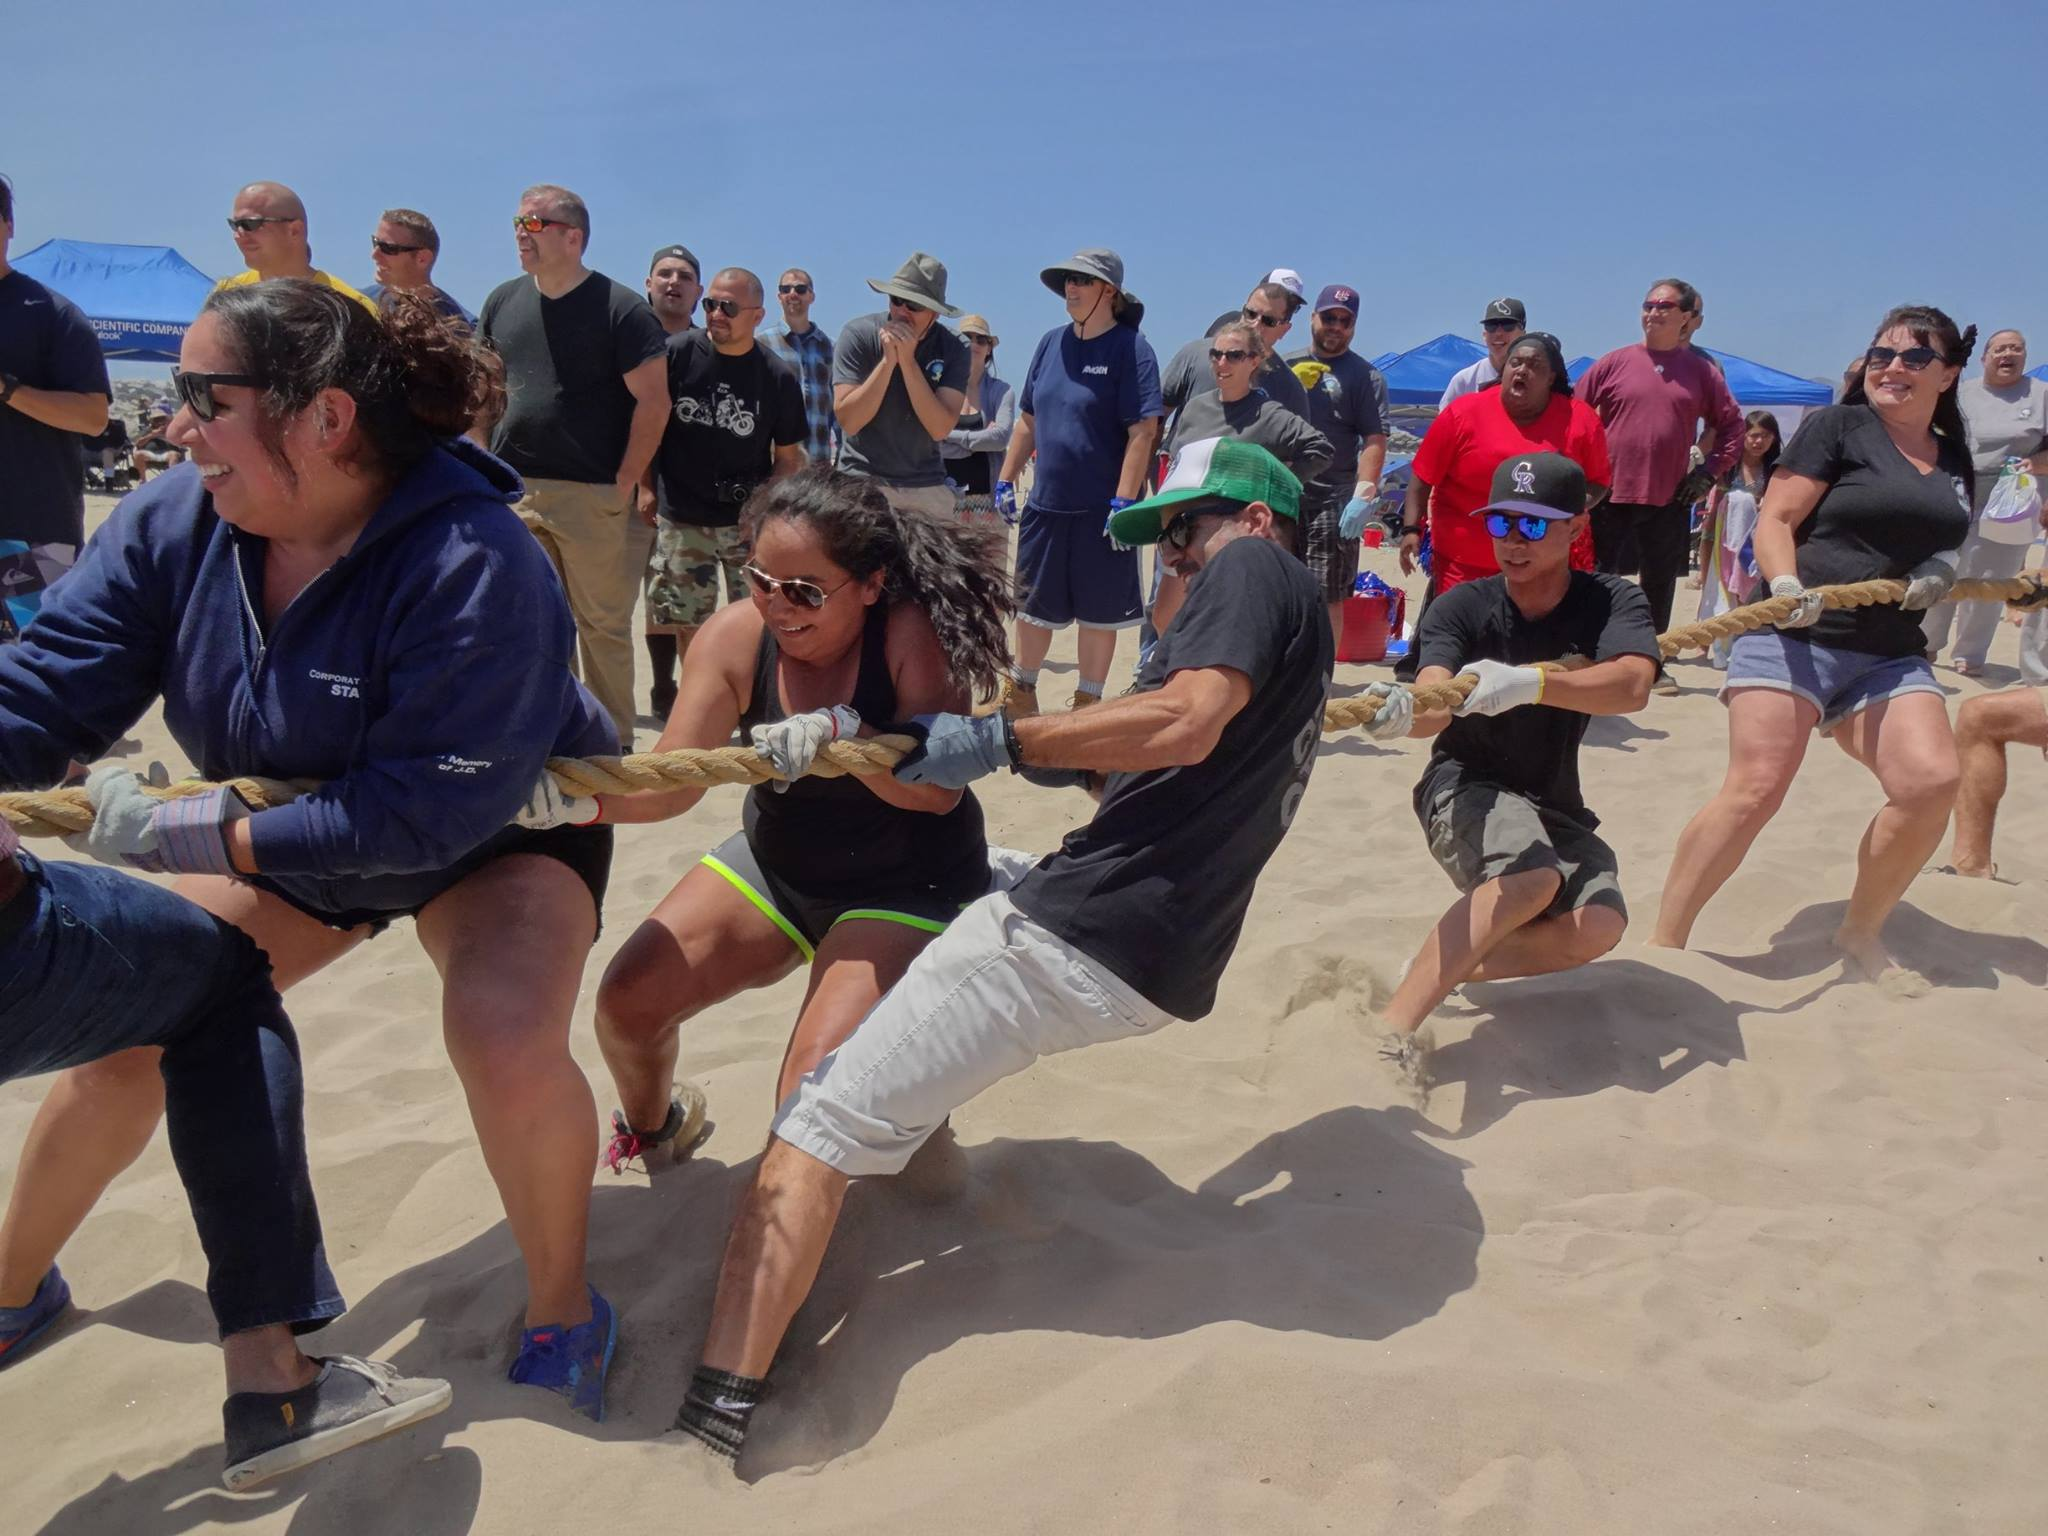 A team playing tug-o-war, digging their feet into the white sand and pulling their end of the rope with all of their strength